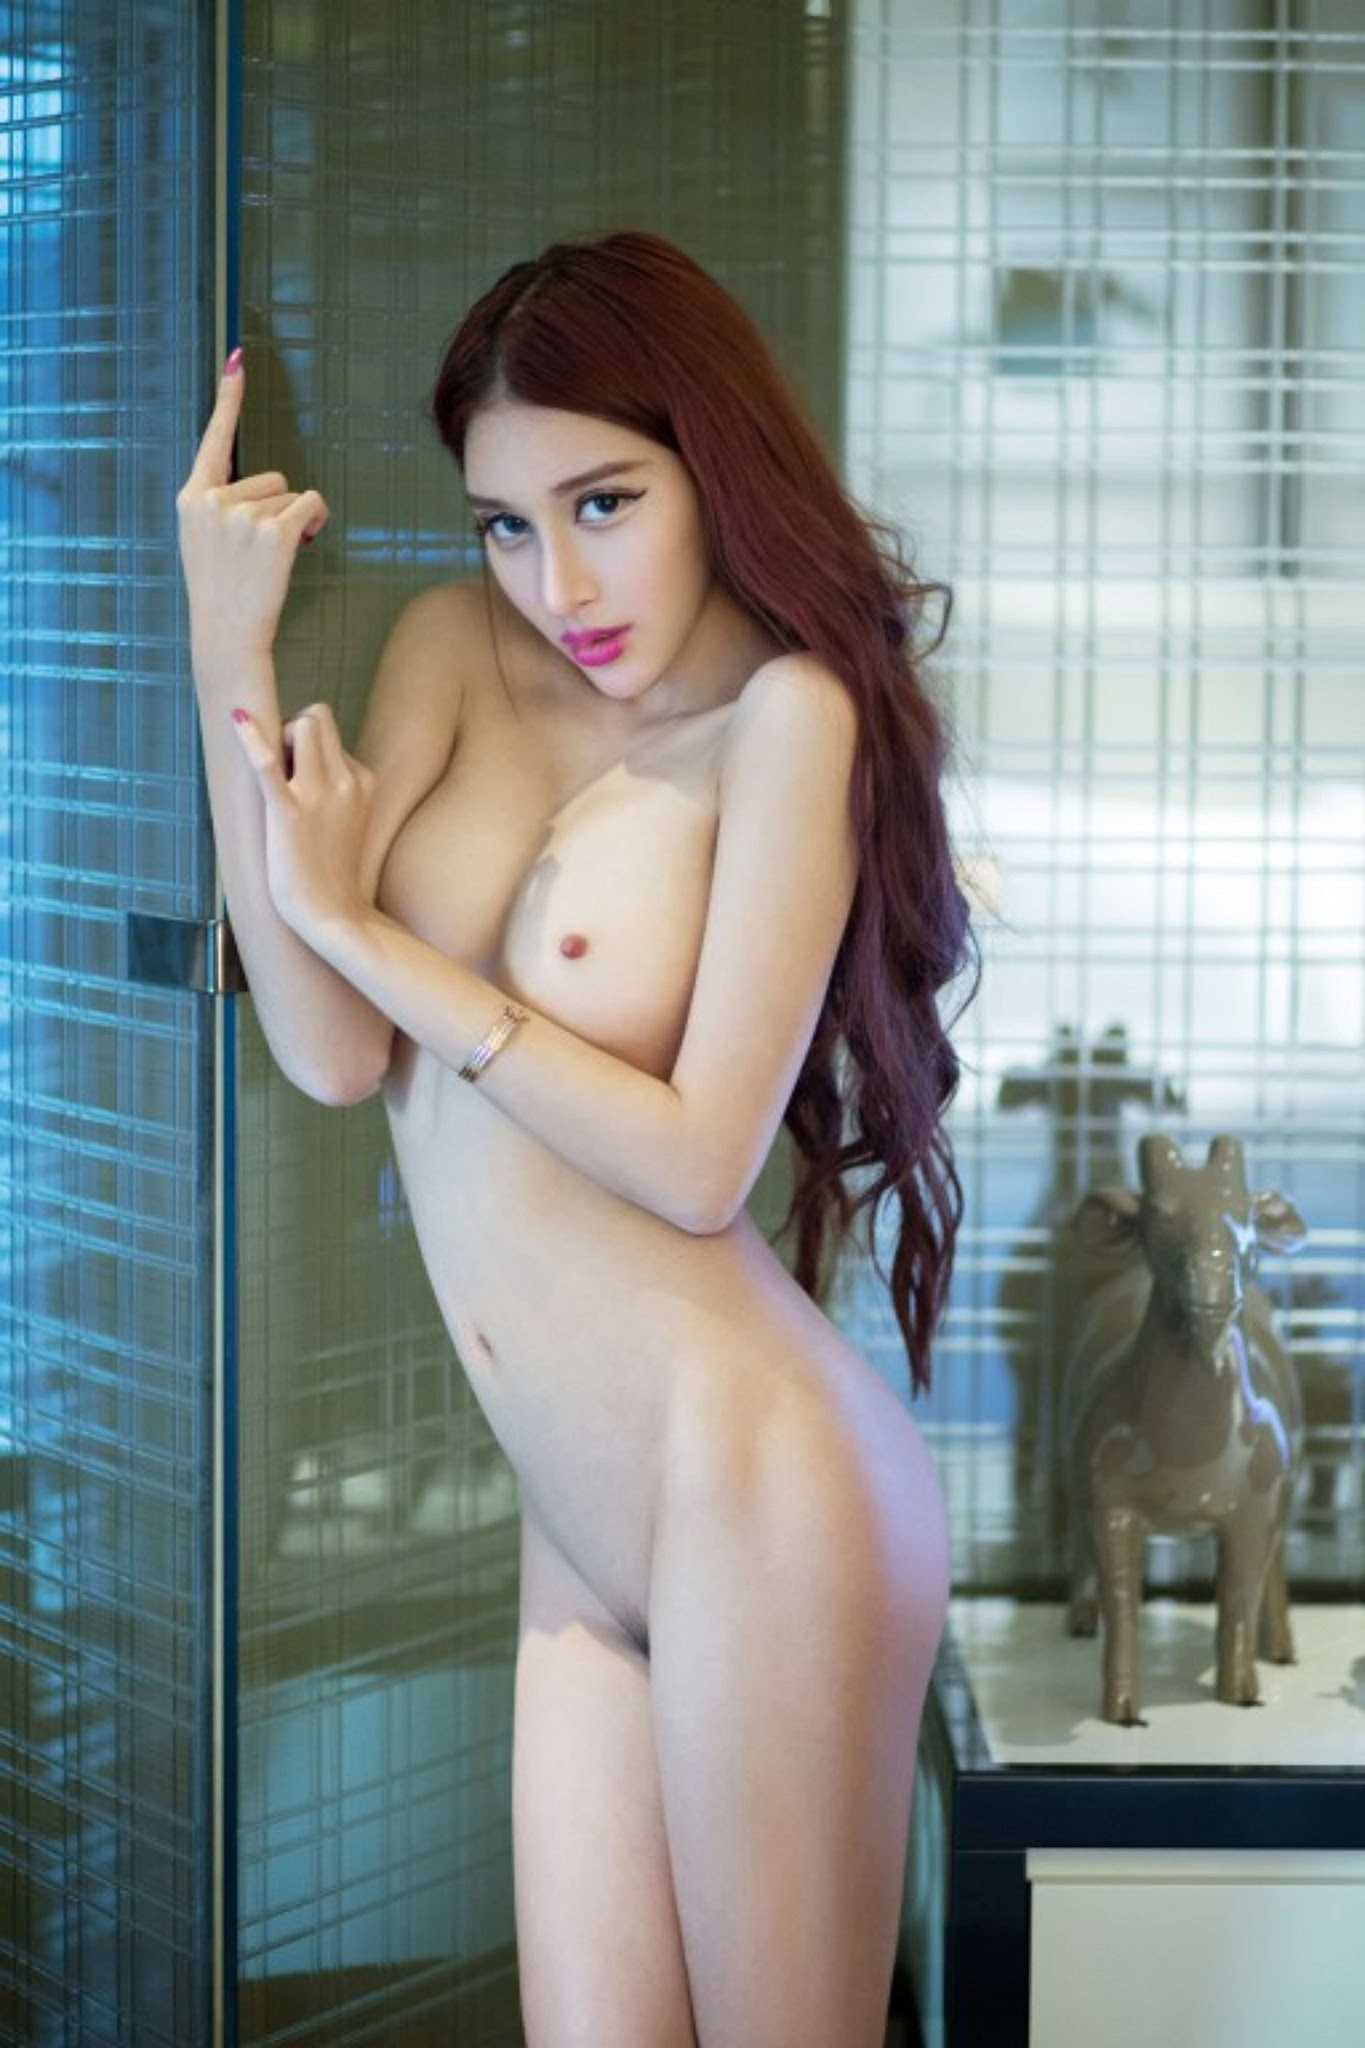 Its beauty china nude archive photos little asshole